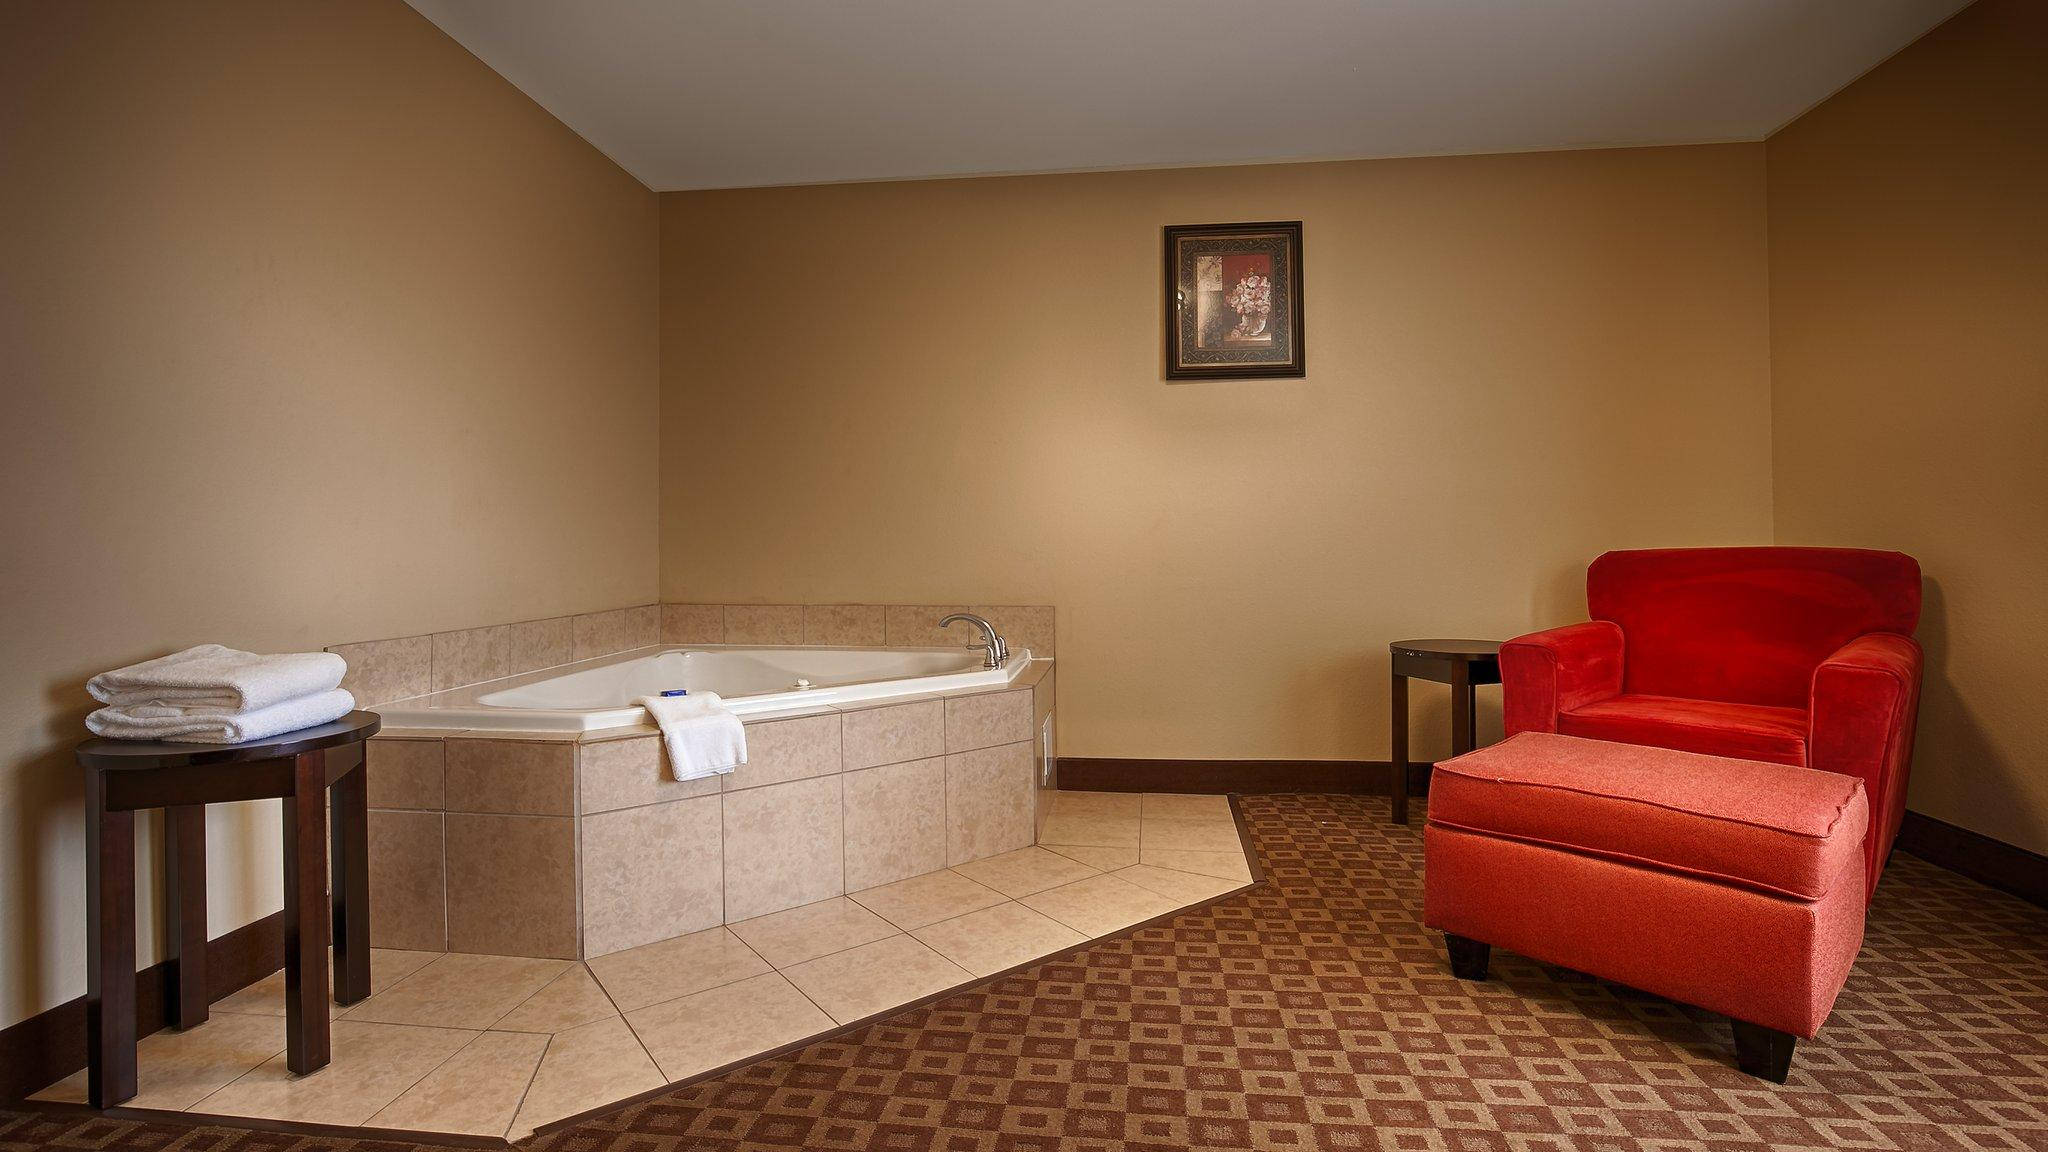 BEST WESTERN PLUS DeRidder Inn & Suites